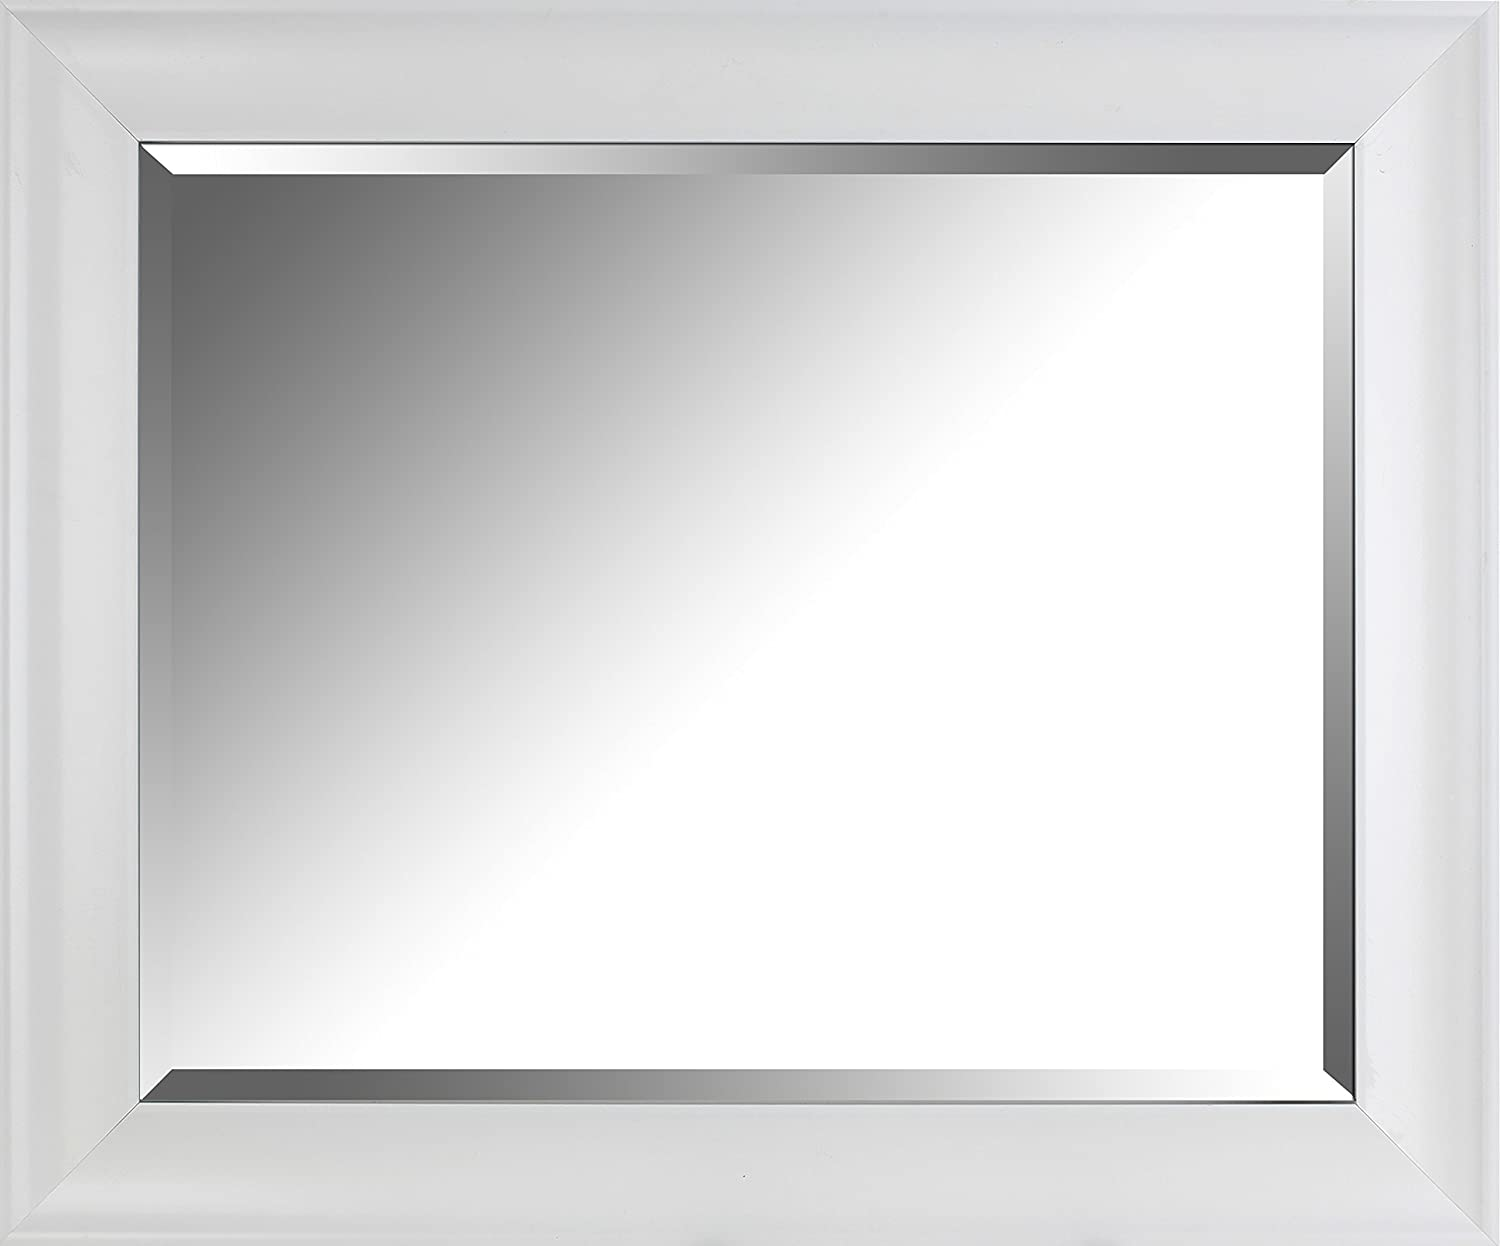 Outlet SALE Mirrorize Cafe Bargain Bevel Wall 28.5x34.5x3.25 White Mirror